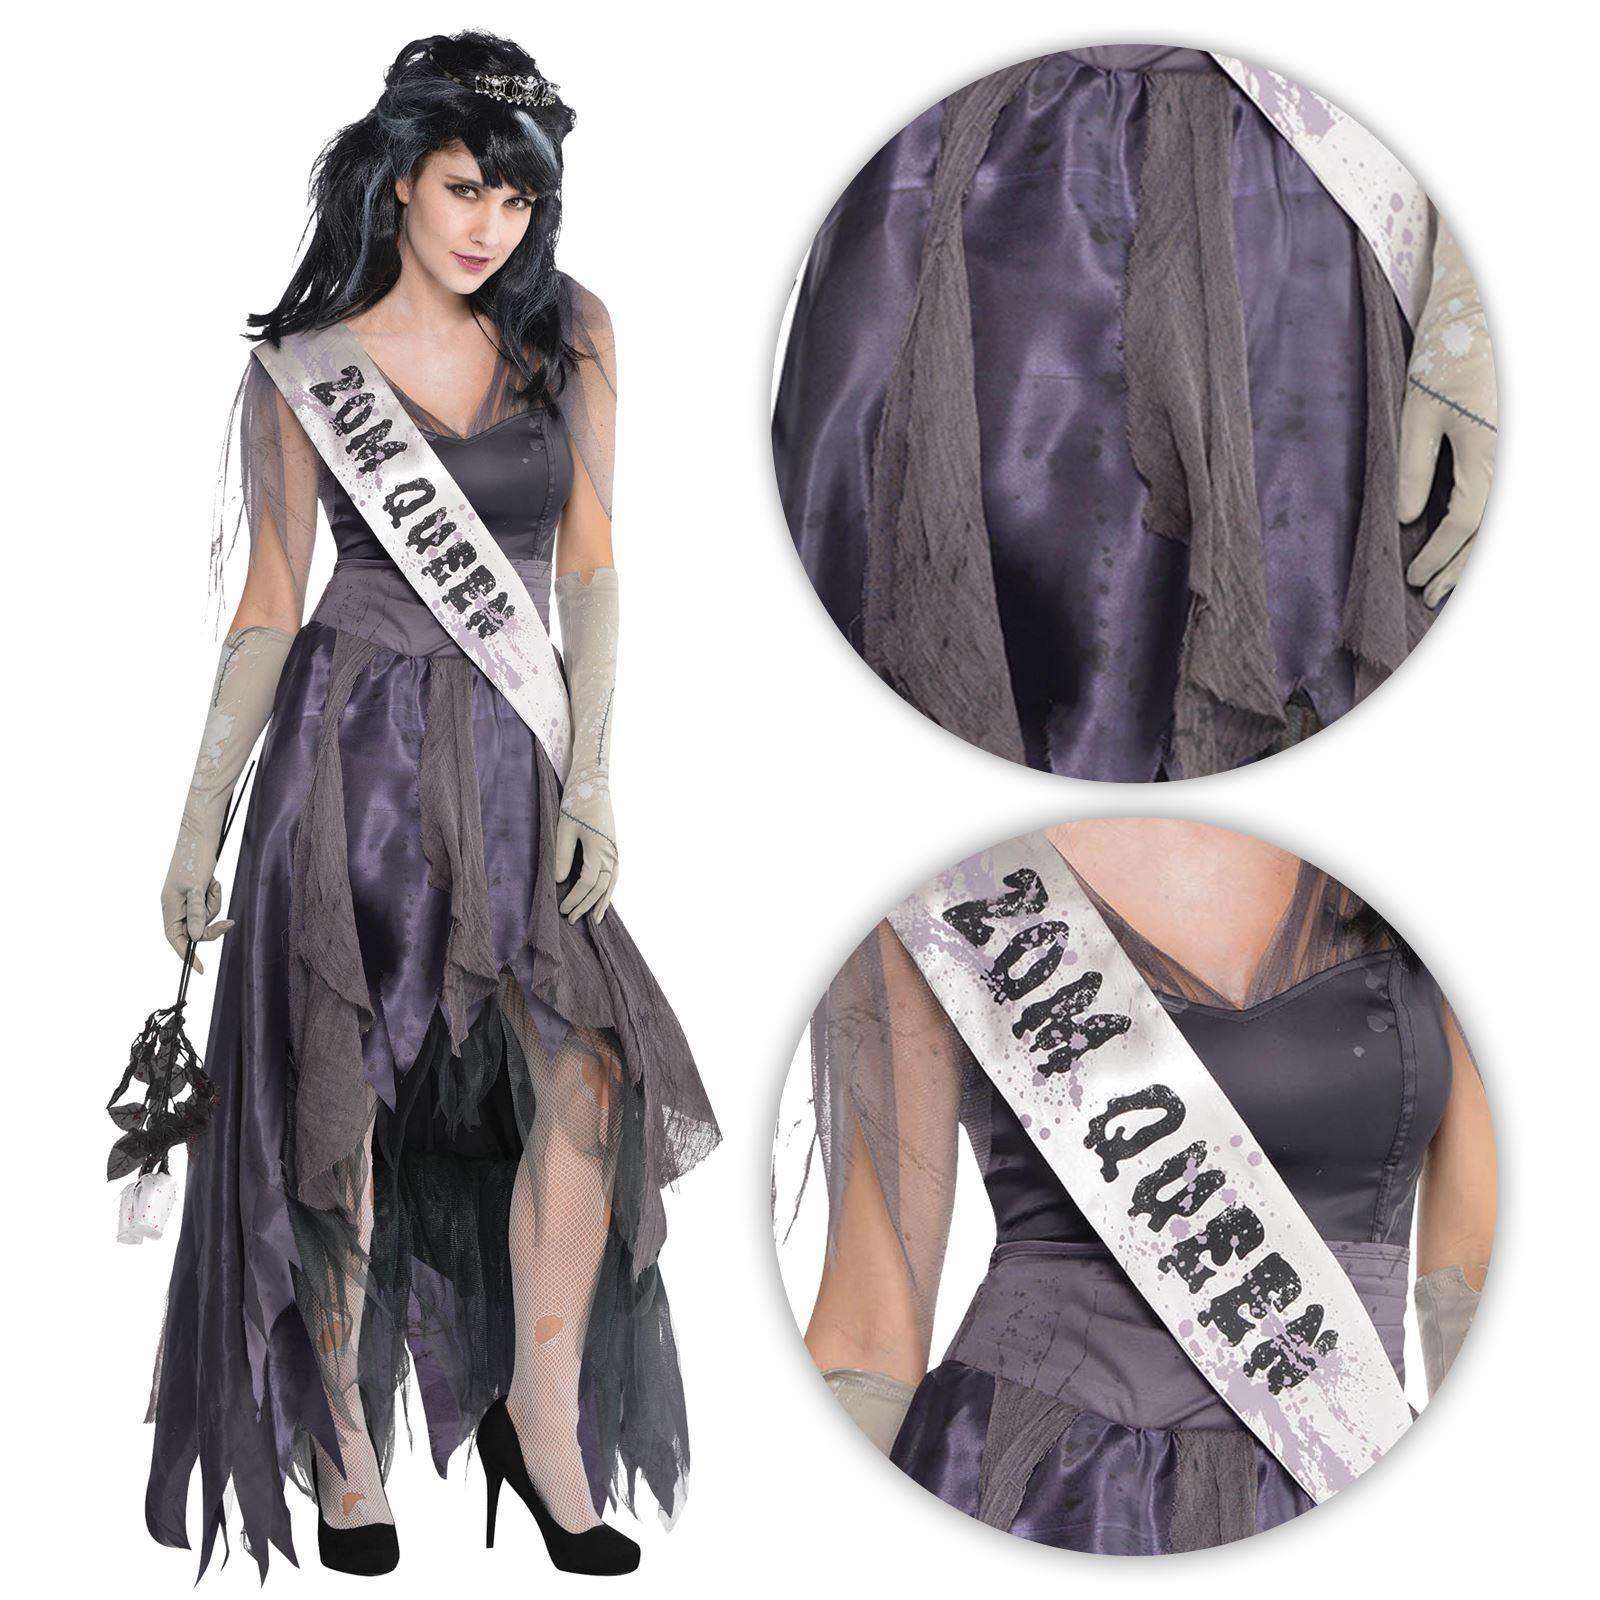 Costume one discount coupon